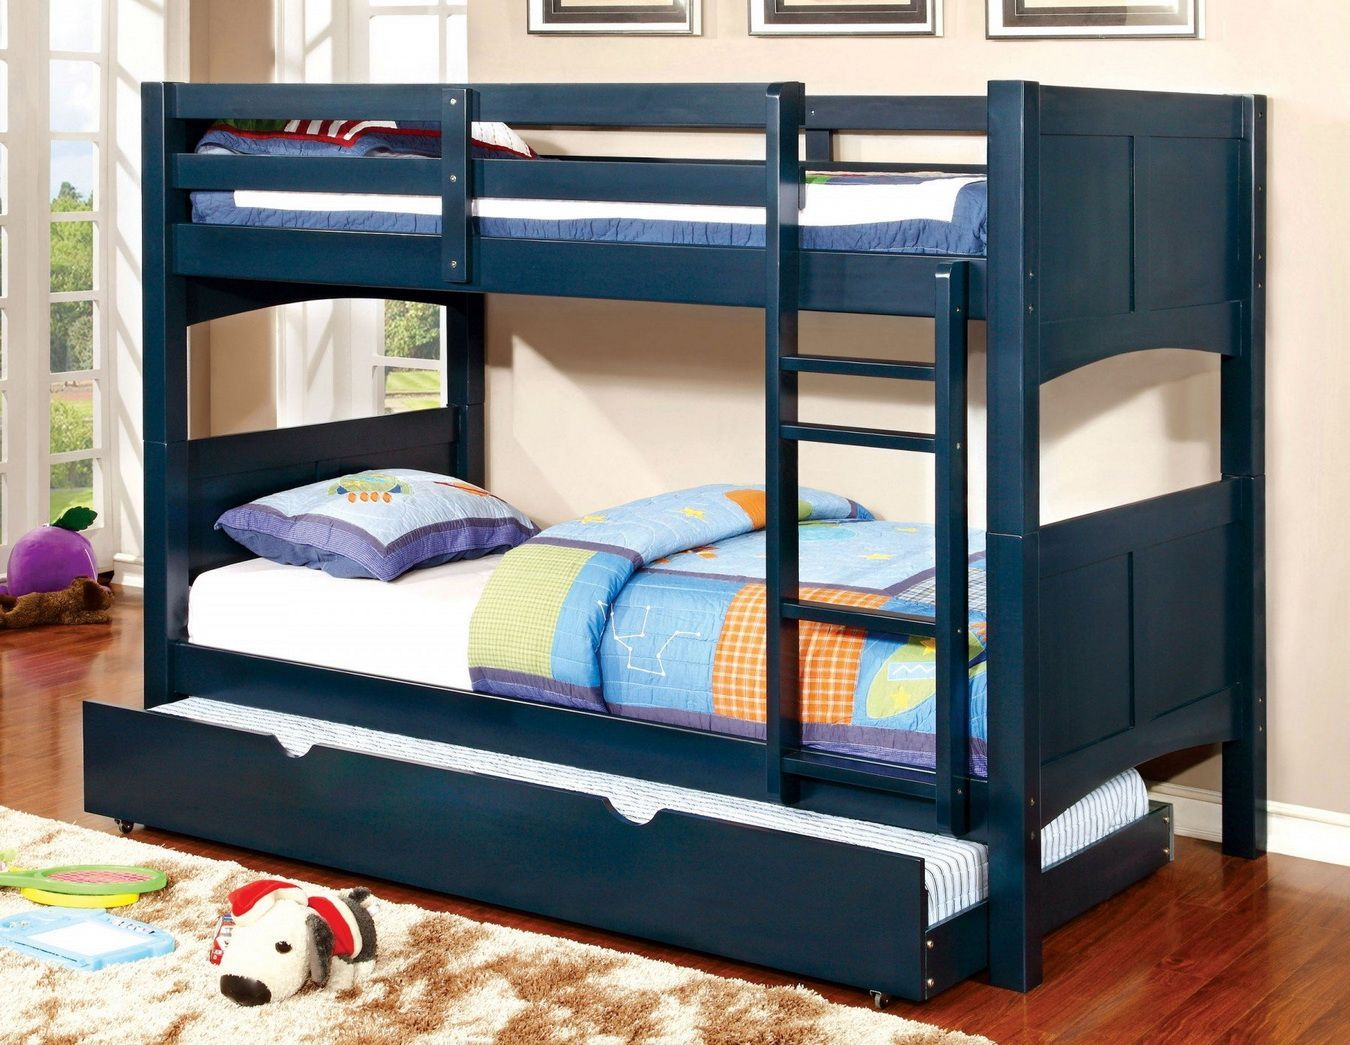 Loft bed with slide wayfair  Prismo II Twin over Twin Trundle Bunk Bed in Blue by Furniture of